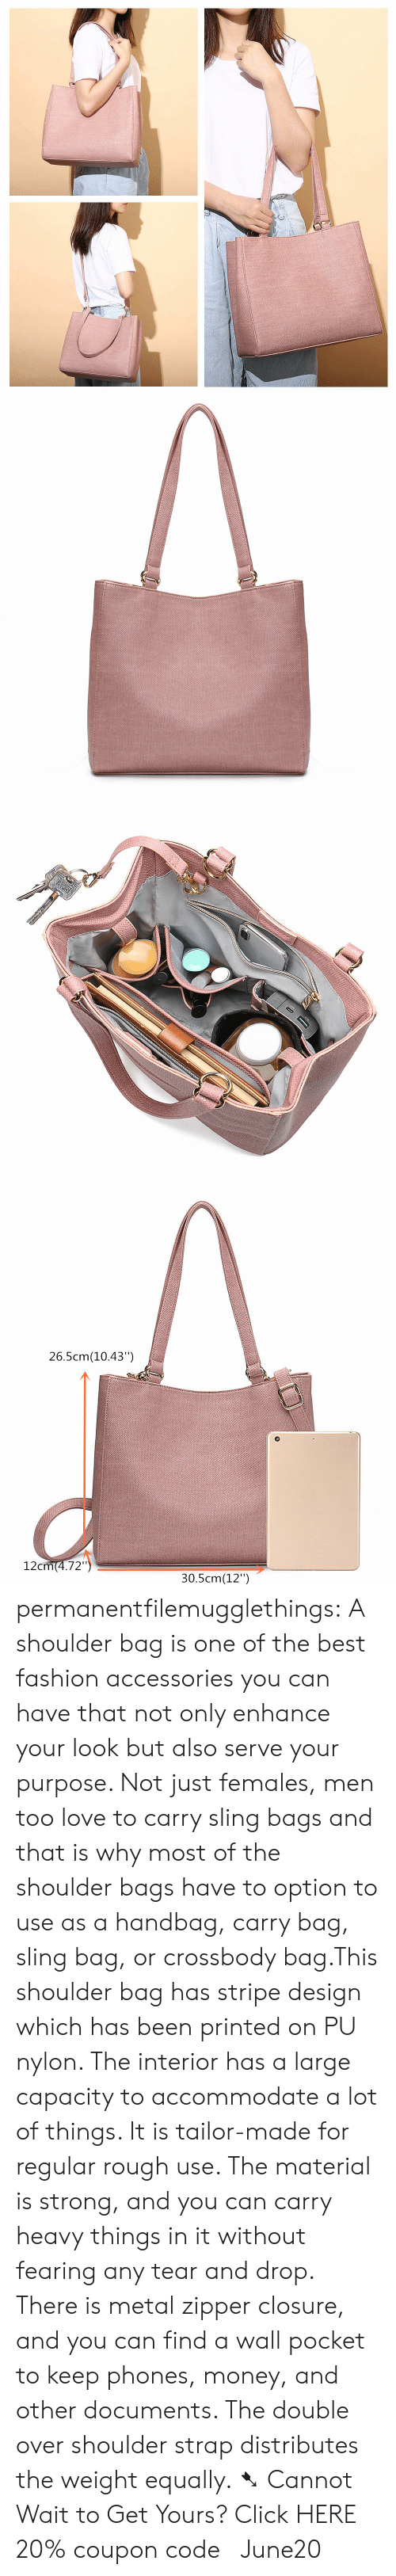 """Click, Fashion, and Love: 26.5cm(10.43"""")  12cm(4.72"""")  30.5cm(12"""") permanentfilemugglethings: A shoulder bag is one of the best fashion accessories you can have that not only enhance your look but also serve your purpose. Not just females, men too love to carry sling bags and that is why most of the shoulder bags have to option to use as a handbag, carry bag, sling bag, or crossbody bag.This shoulder bag has stripe design which has been printed on PU nylon. The interior has a large capacity to accommodate a lot of things. It is tailor-made for regular rough use. The material is strong, and you can carry heavy things in it without fearing any tear and drop. There is metal zipper closure, and you can find a wall pocket to keep phones, money, and other documents. The double over shoulder strap distributes the weight equally. ➷ Cannot Wait to Get Yours? Click HERE 20% coupon code: June20"""